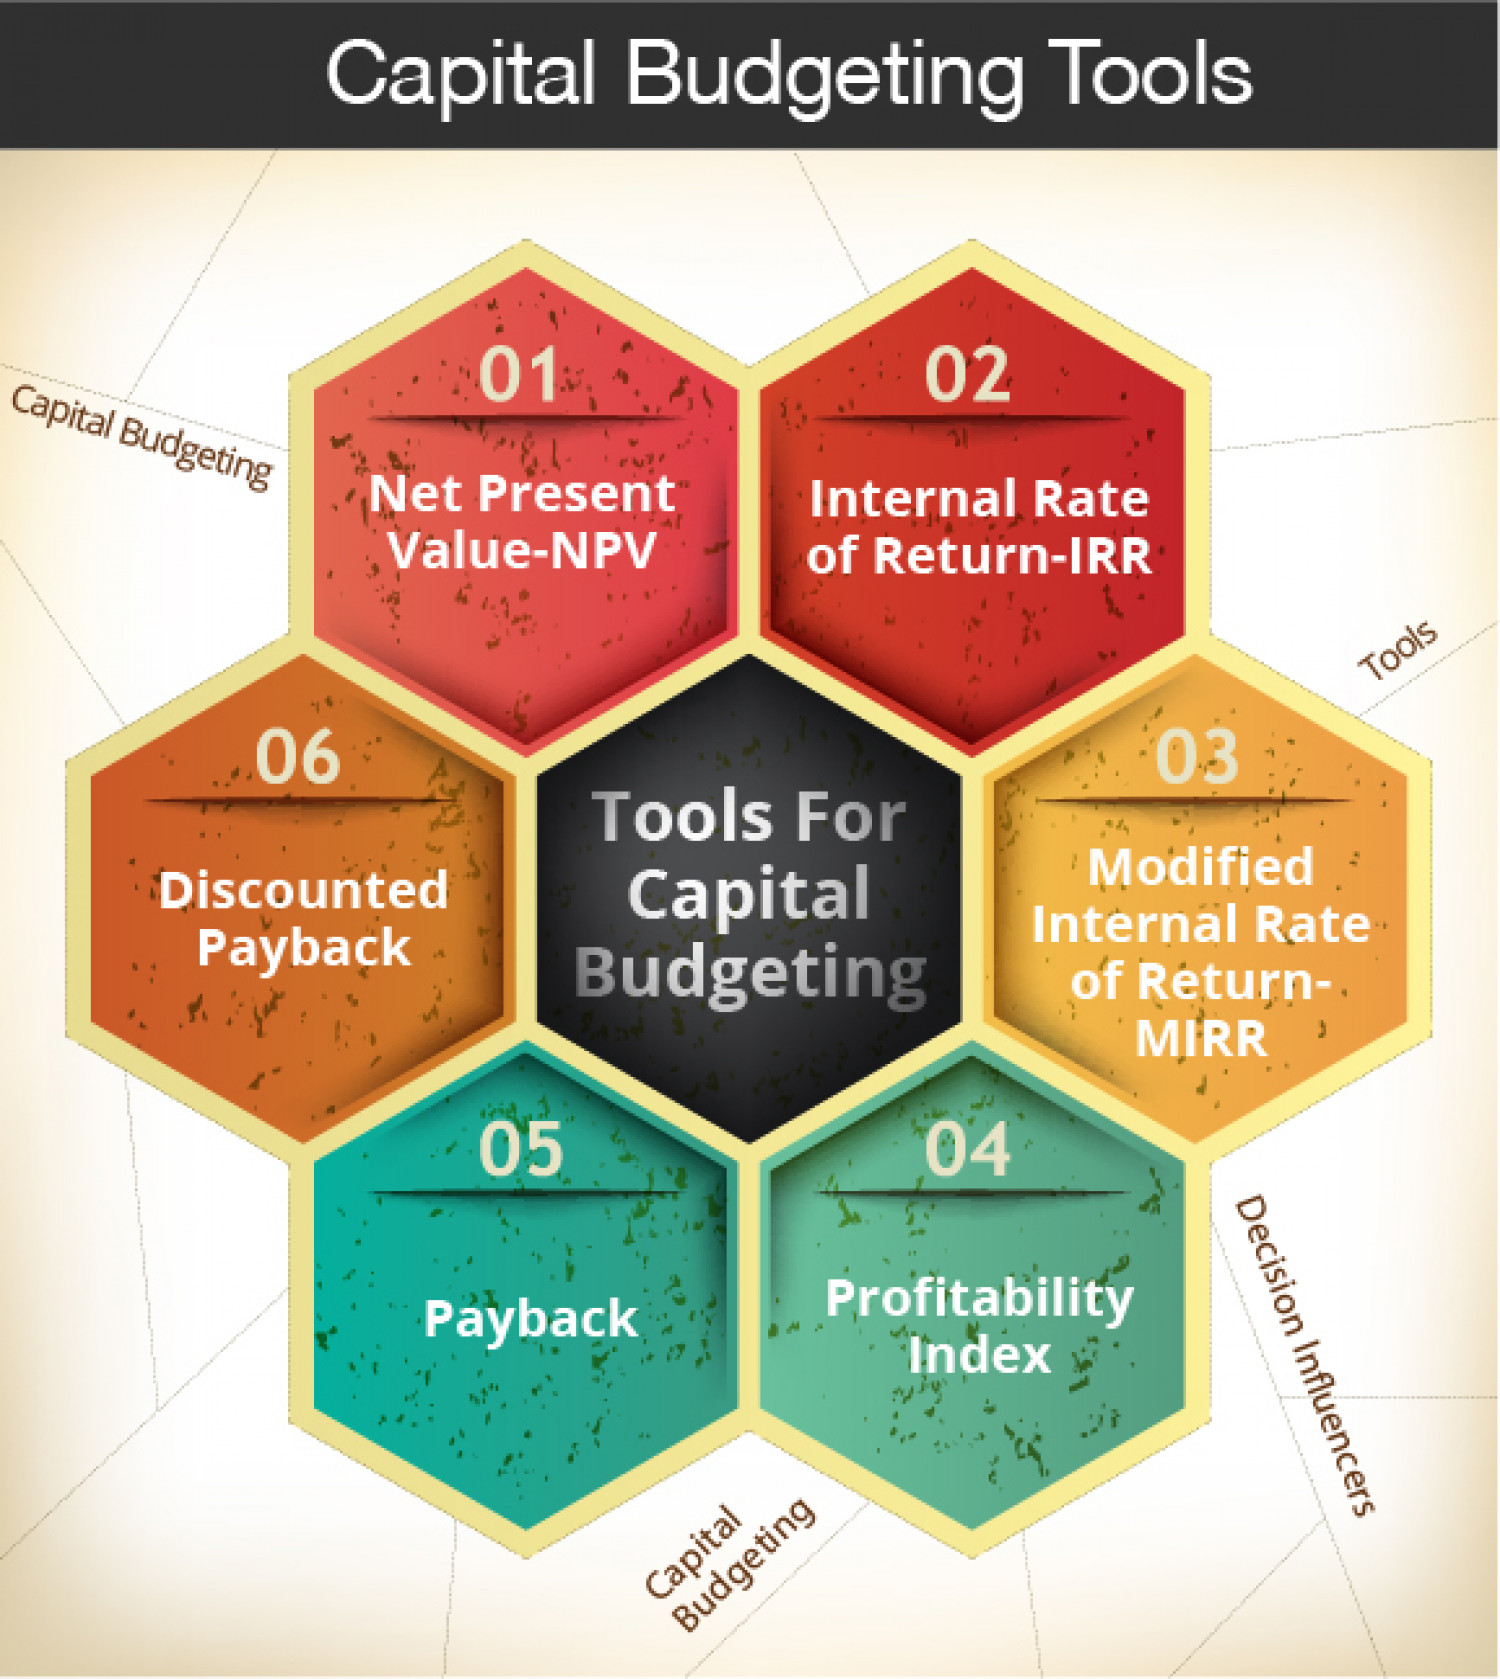 Capital Budgeting Tools